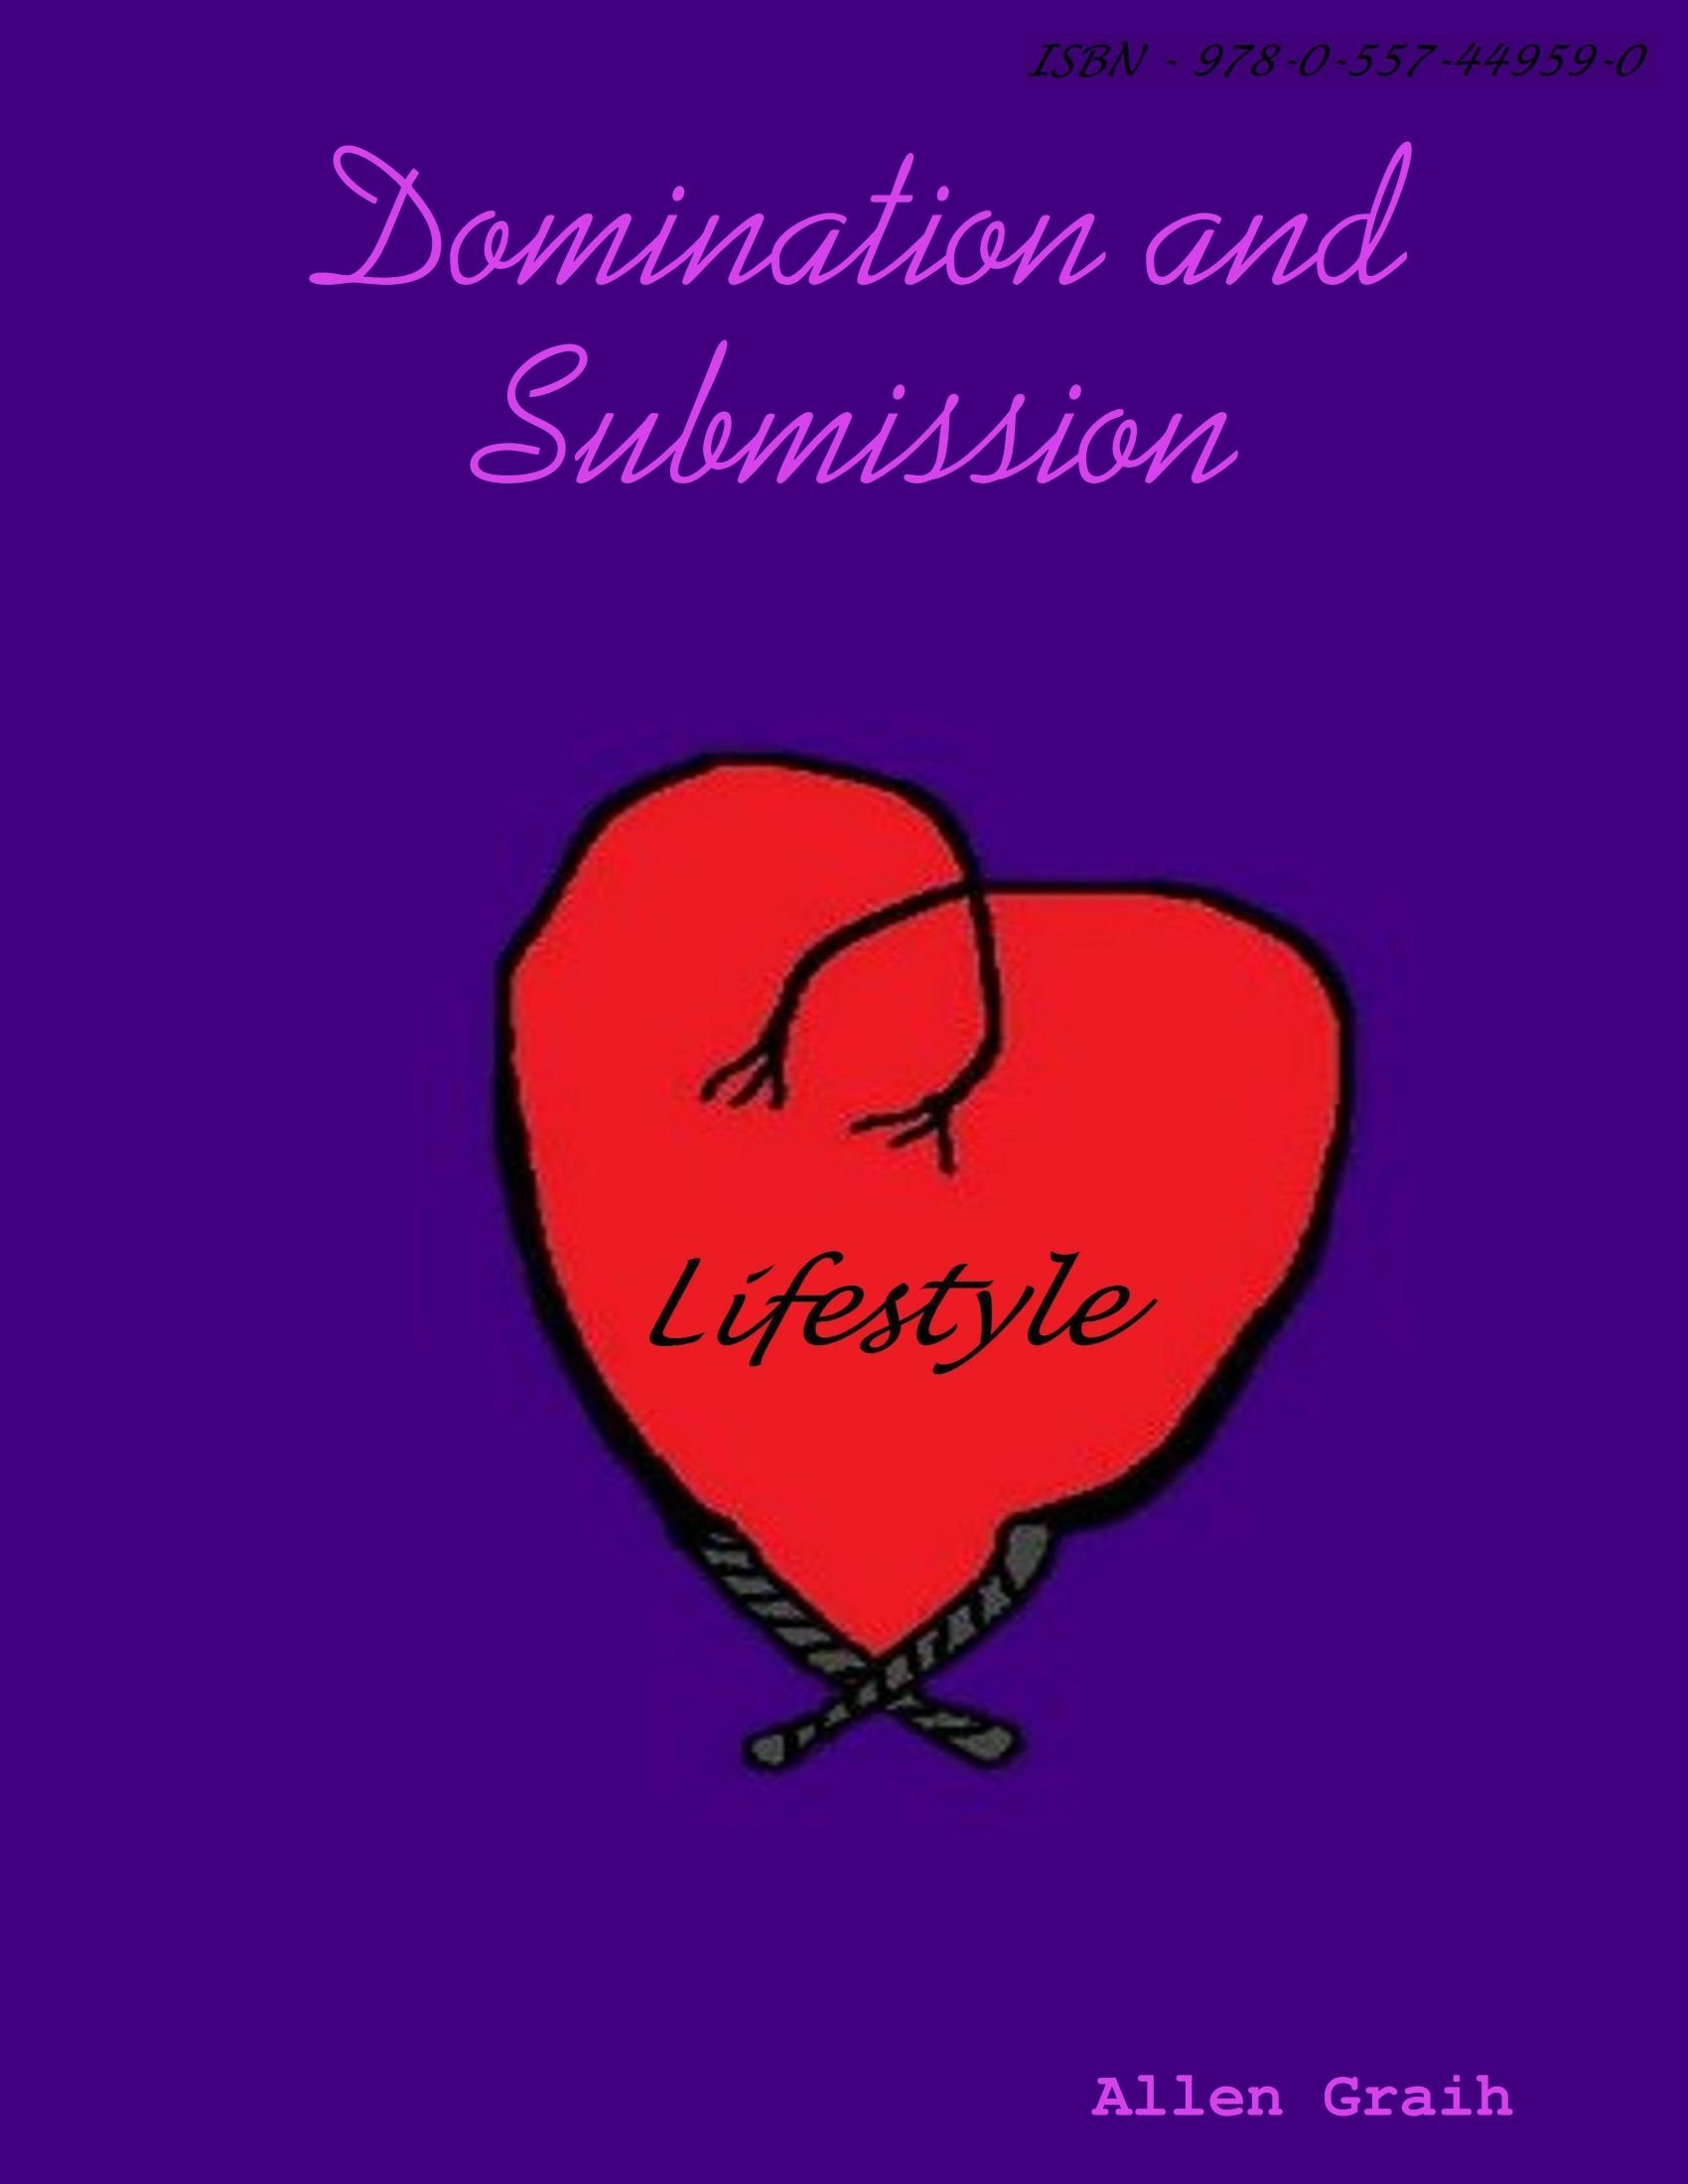 Domination and submission lifestyle